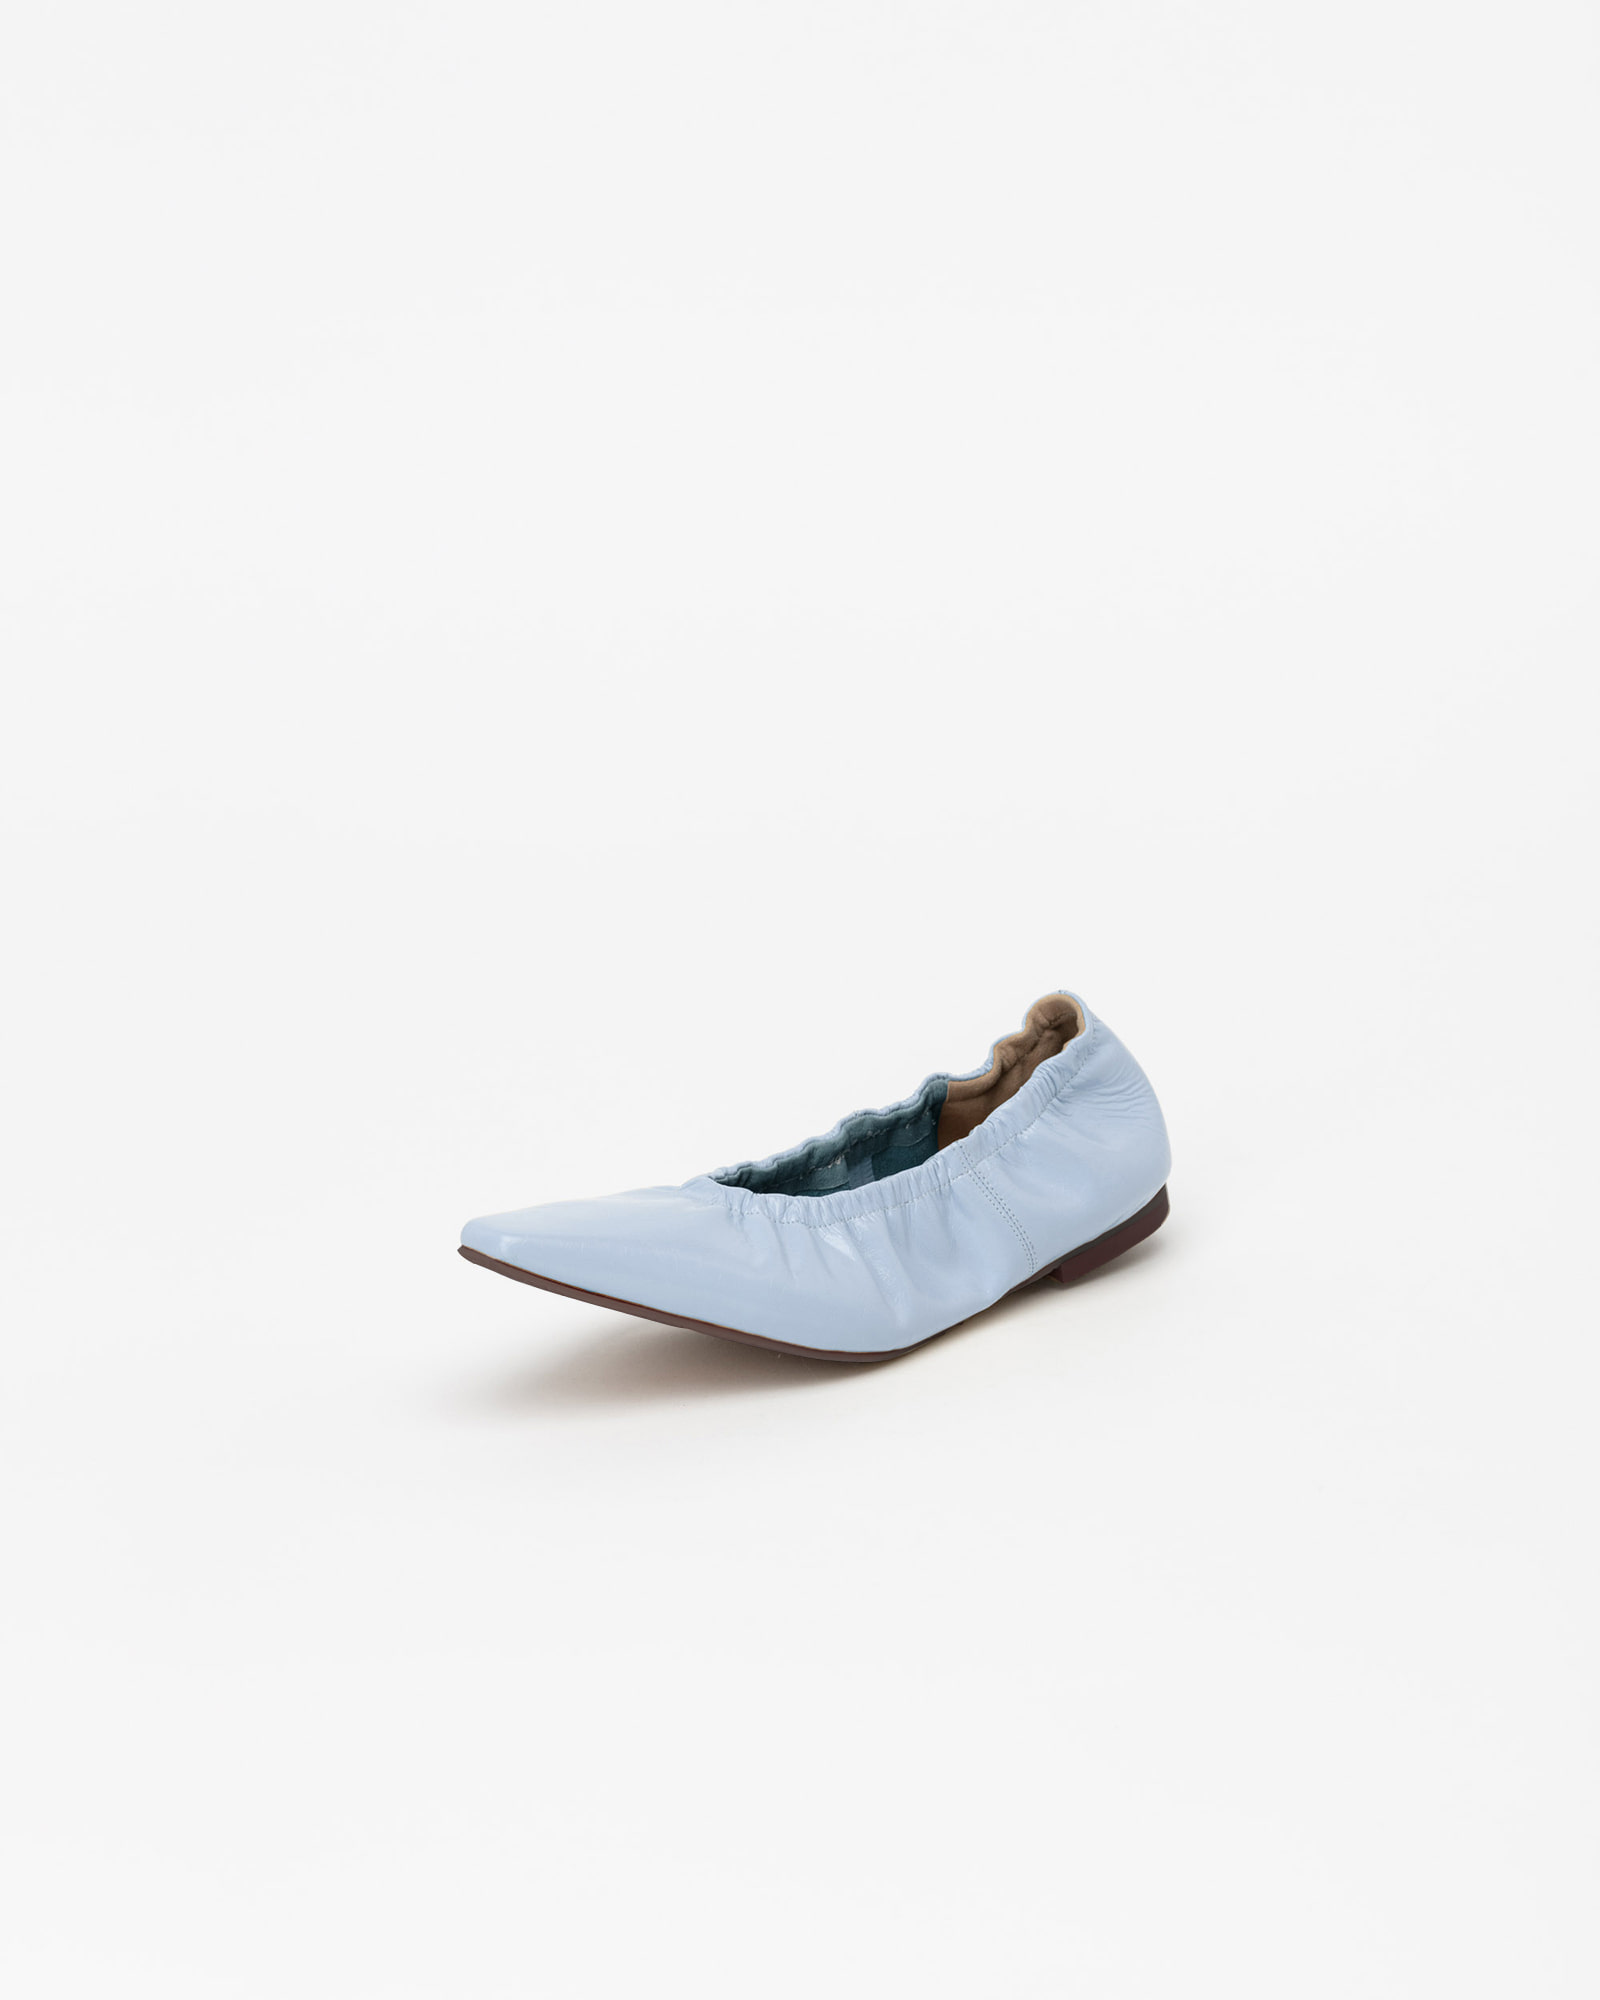 Arnaud Soft Flat Shoes in Wrinkled Sky Blue